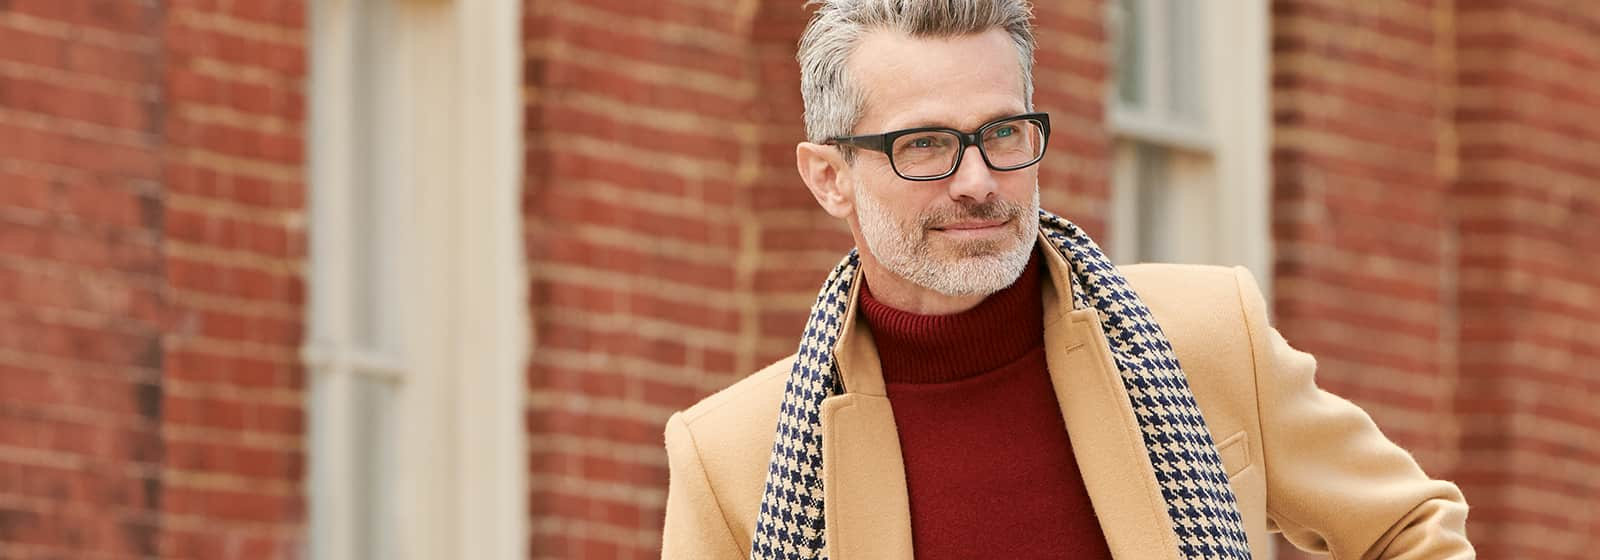 Turtleneck Sweaters for Men: A Fall Staple